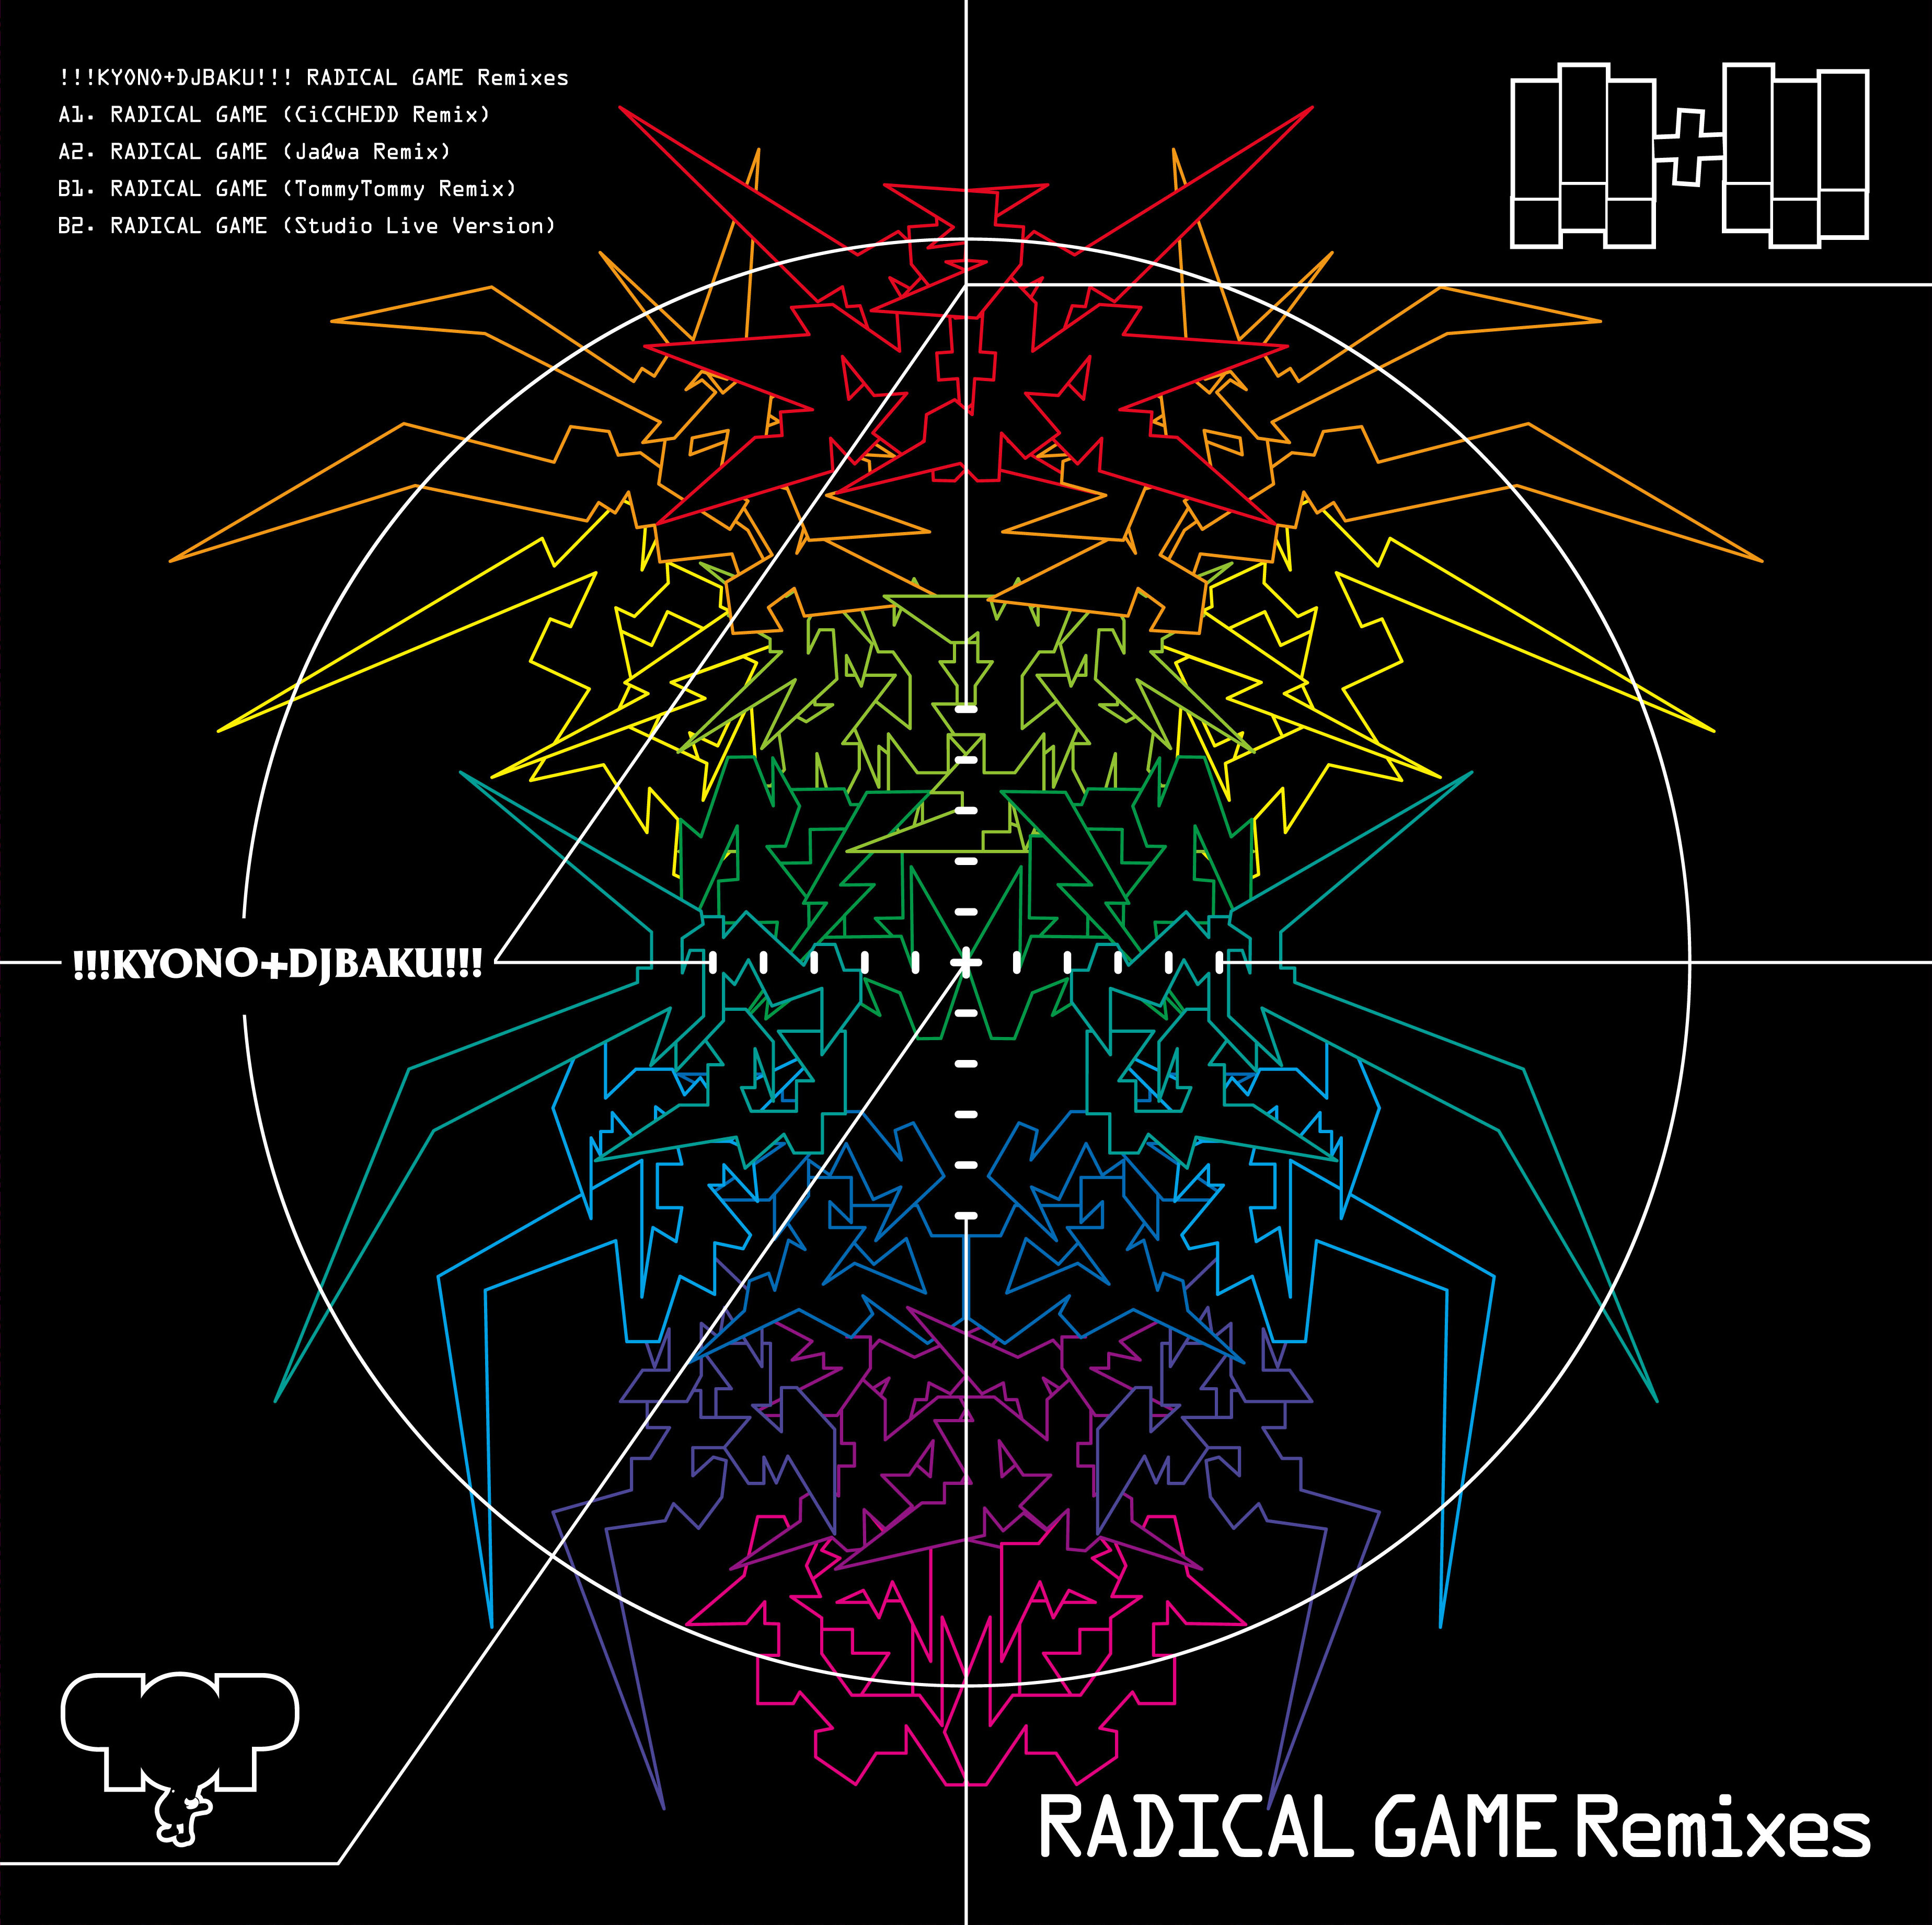 RADICAL GAME Remixes